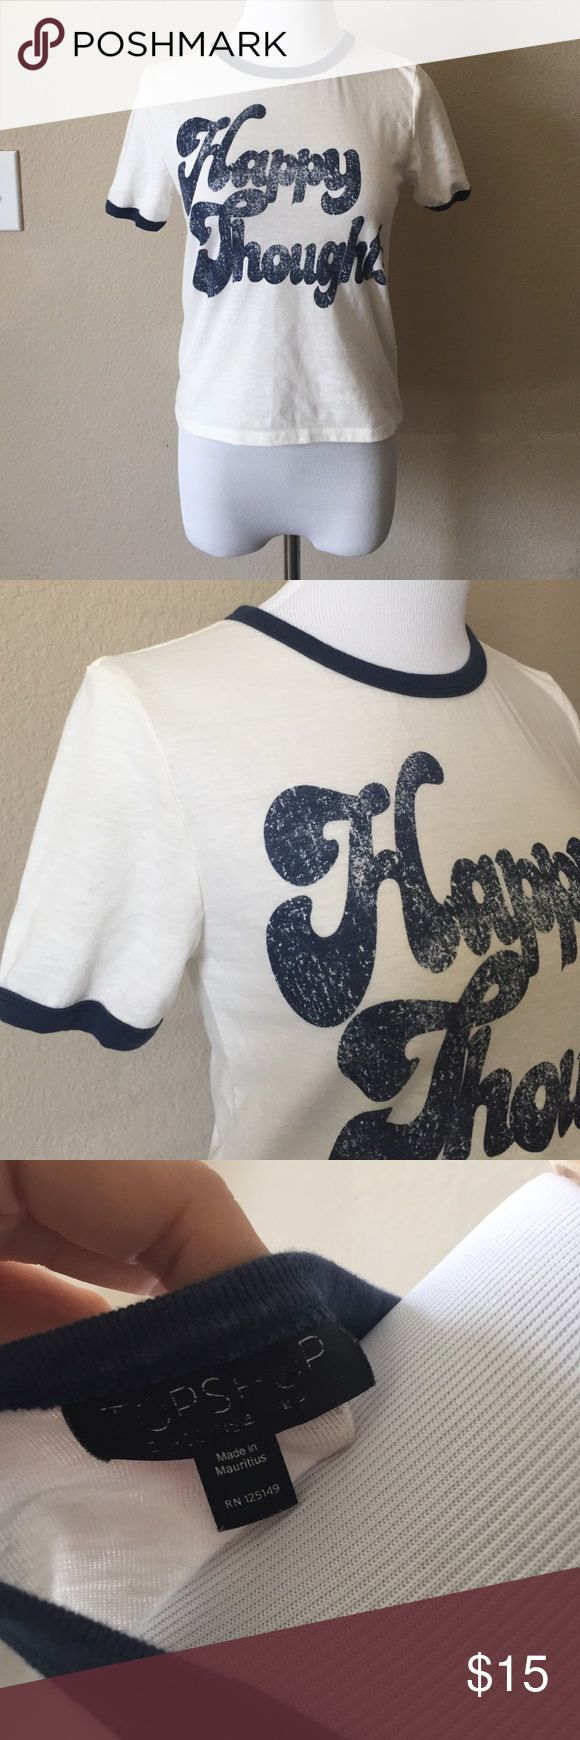 Topshop happy thoughts camp tshirt Adorable Topshop t shirt. This shirt would fit a very petite woman or a little girl or boy around a size 10. The size is worn off the label but this is around a petite xs Topshop Tops Tees - Short Sleeve